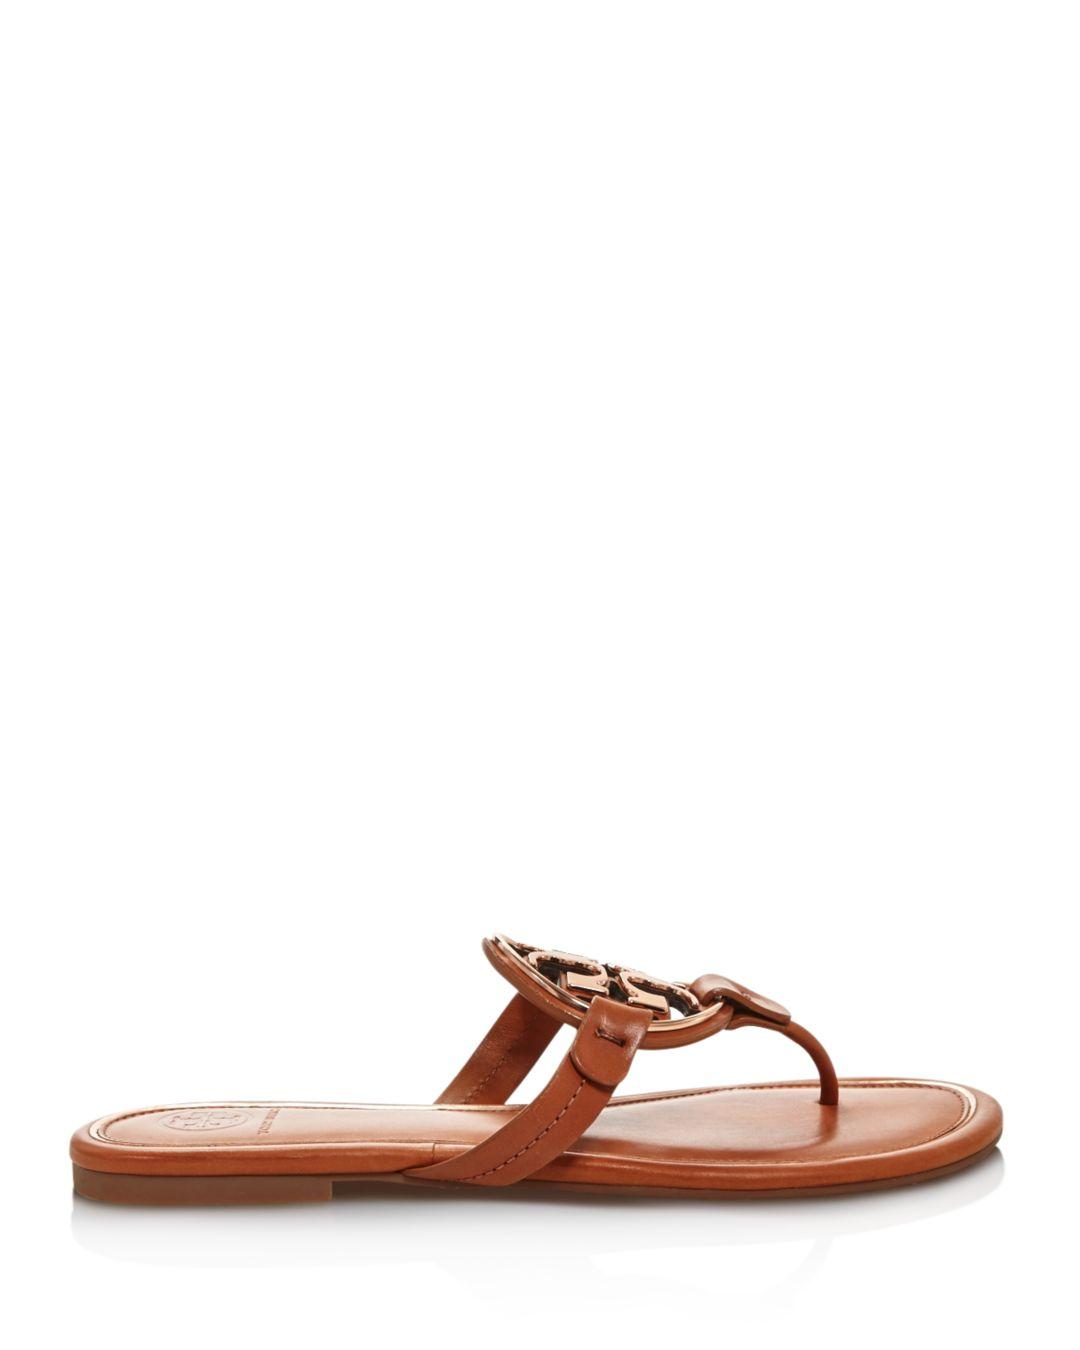 559db83f87ab Tory Burch Women s Metal Miller Leather Thong Sandals - Lyst